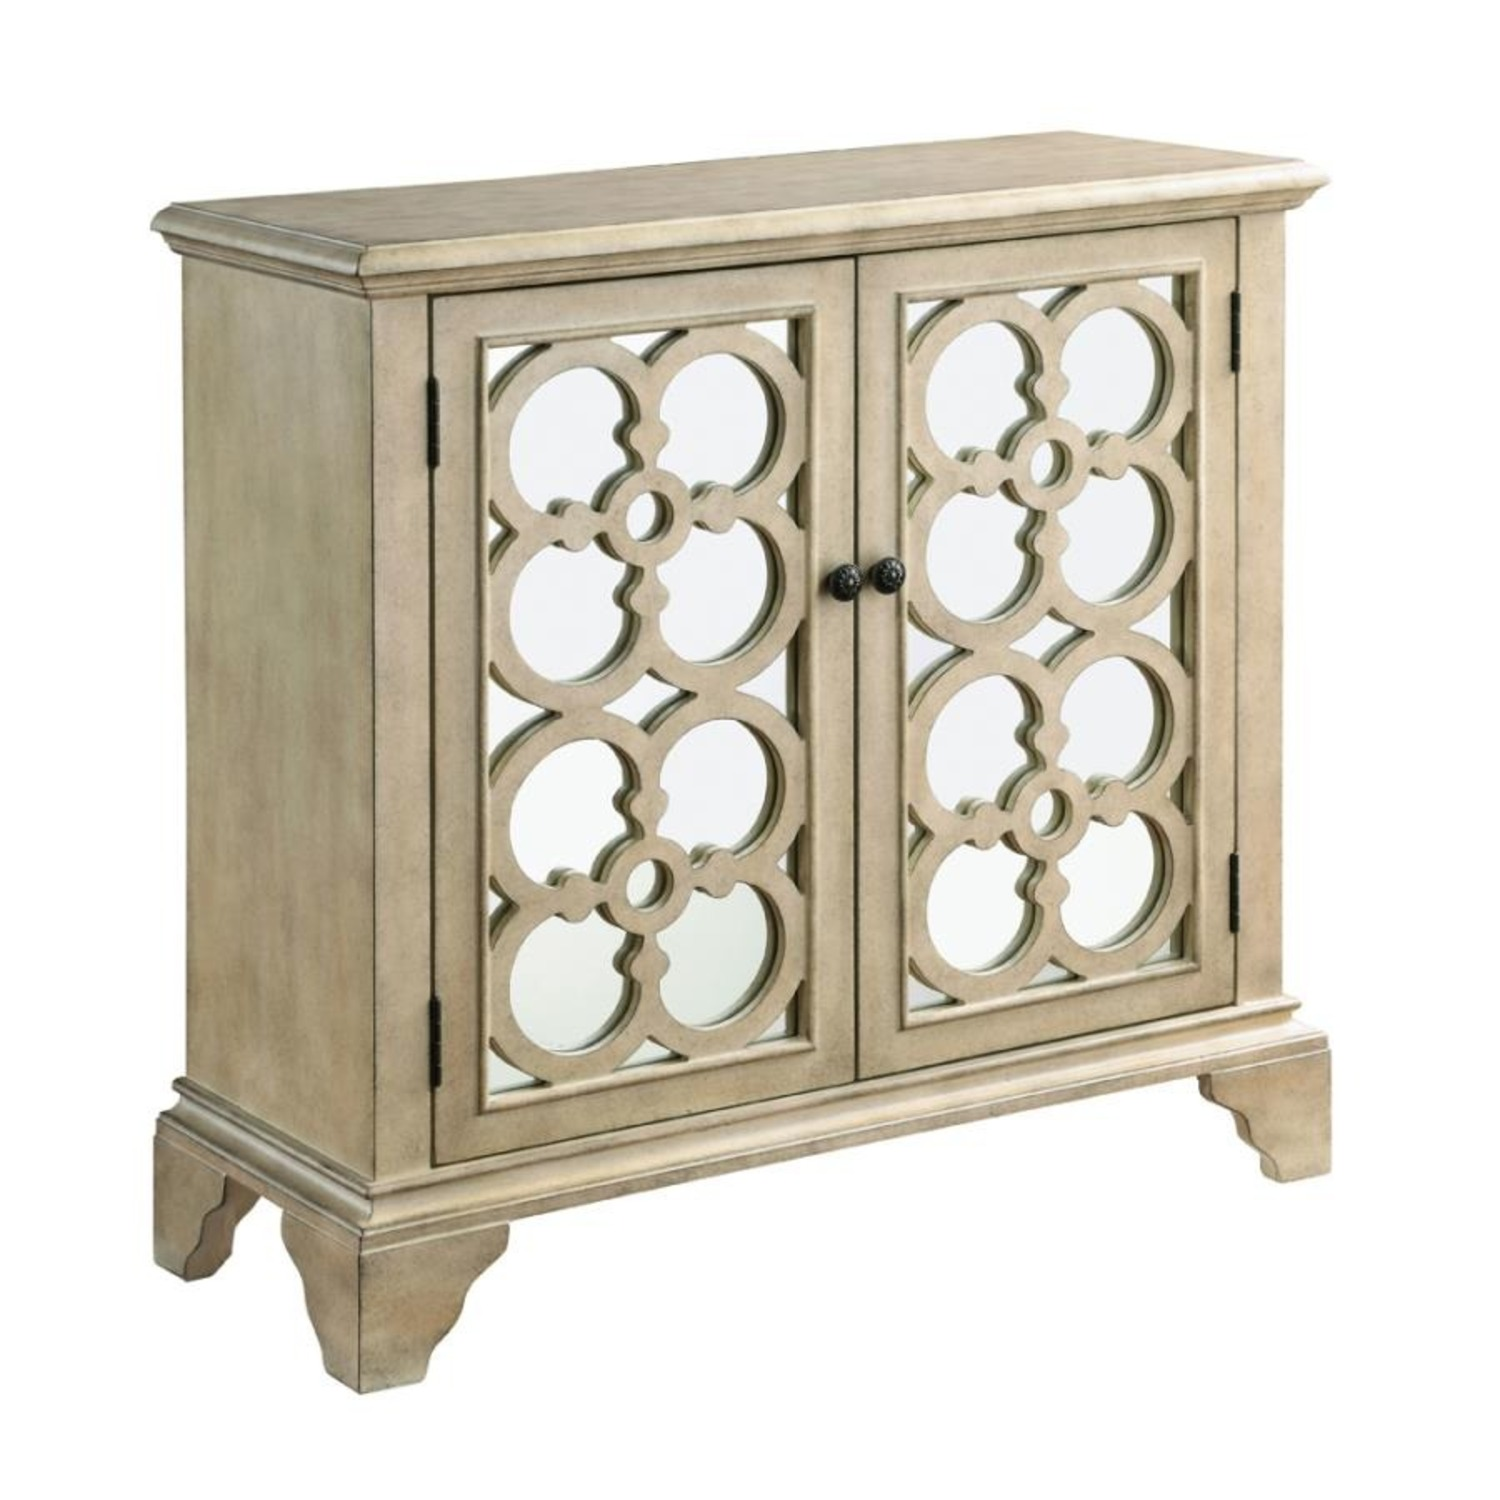 Accent Cabinet In Natural Hardwood Finish - image-0